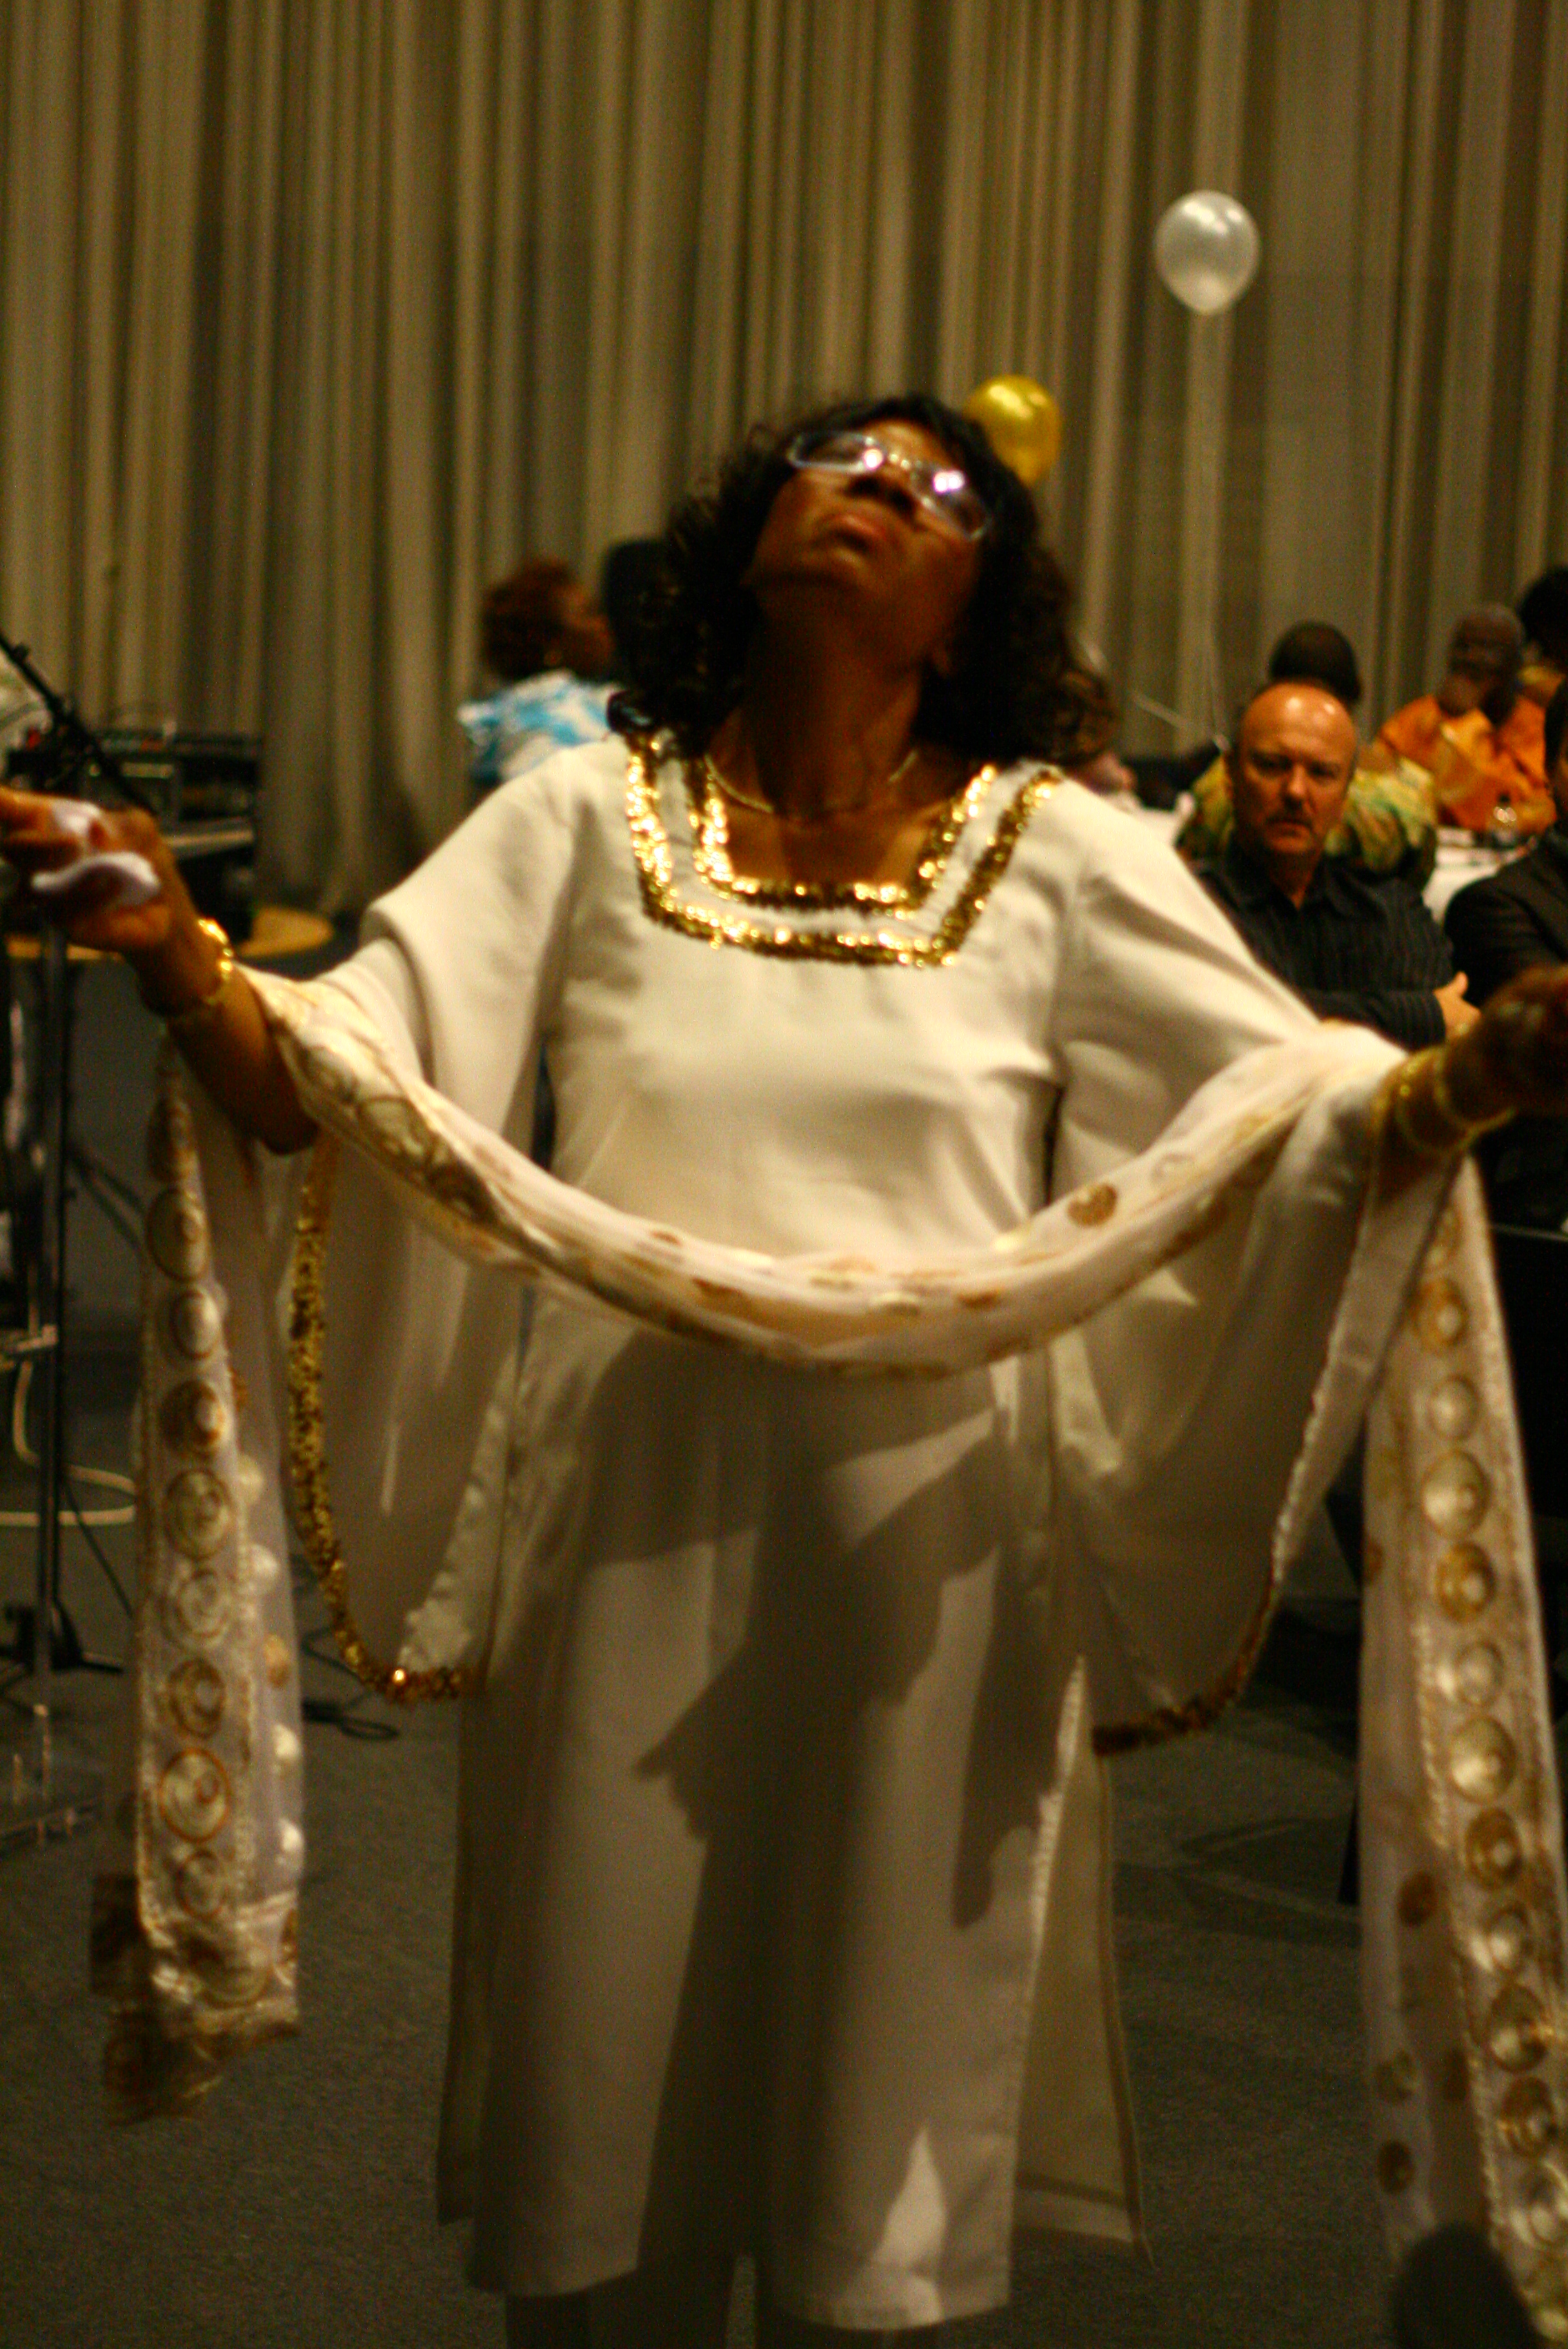 Ngozi Okike in Worship Mode 08.jpg